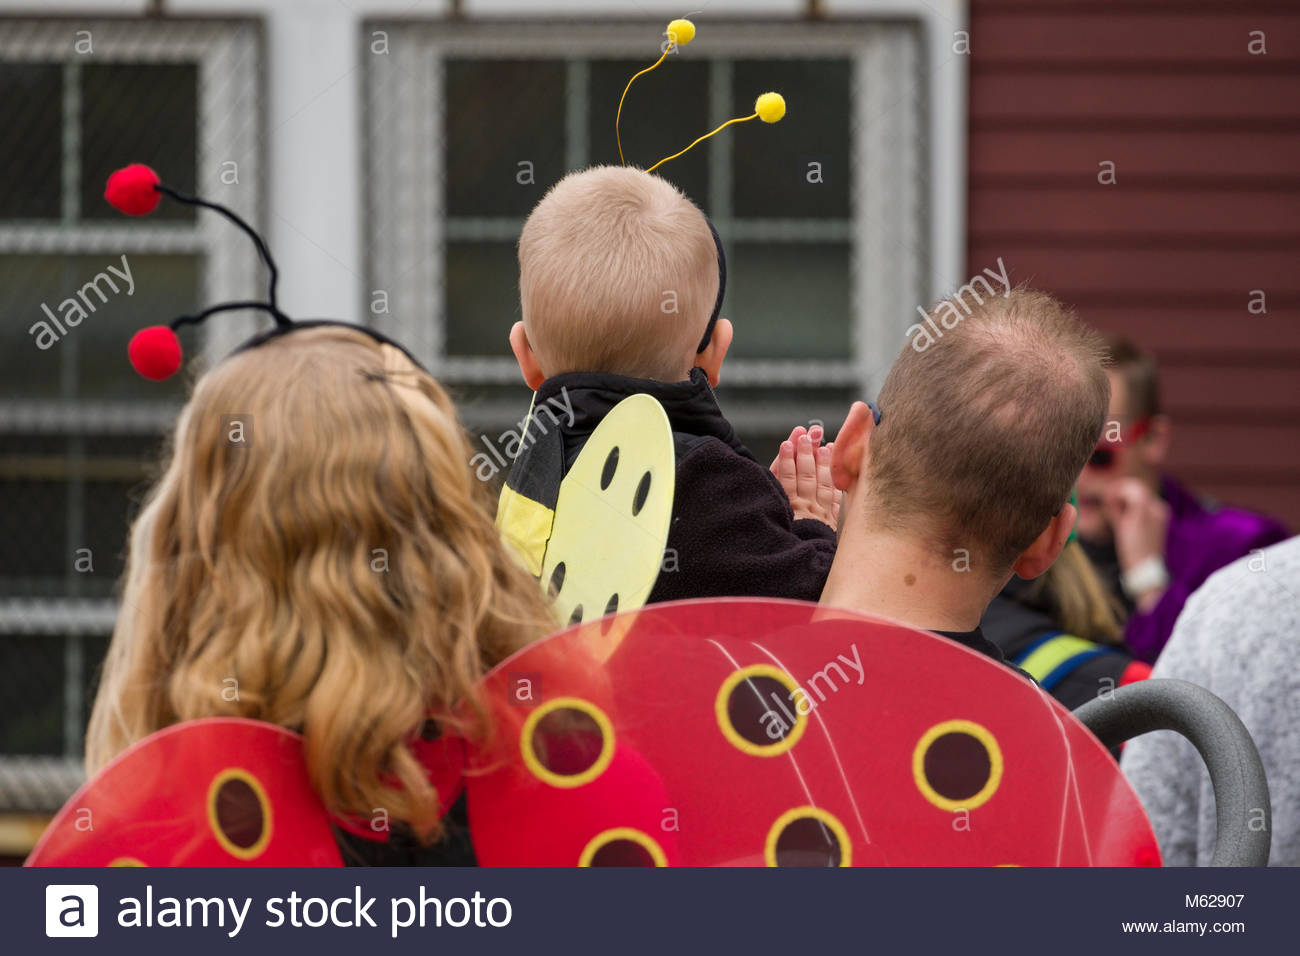 Man holding boy wearing a bug costume with fuzzy antenna on his head at the Ogunquit Village School waiting for - Stock Image